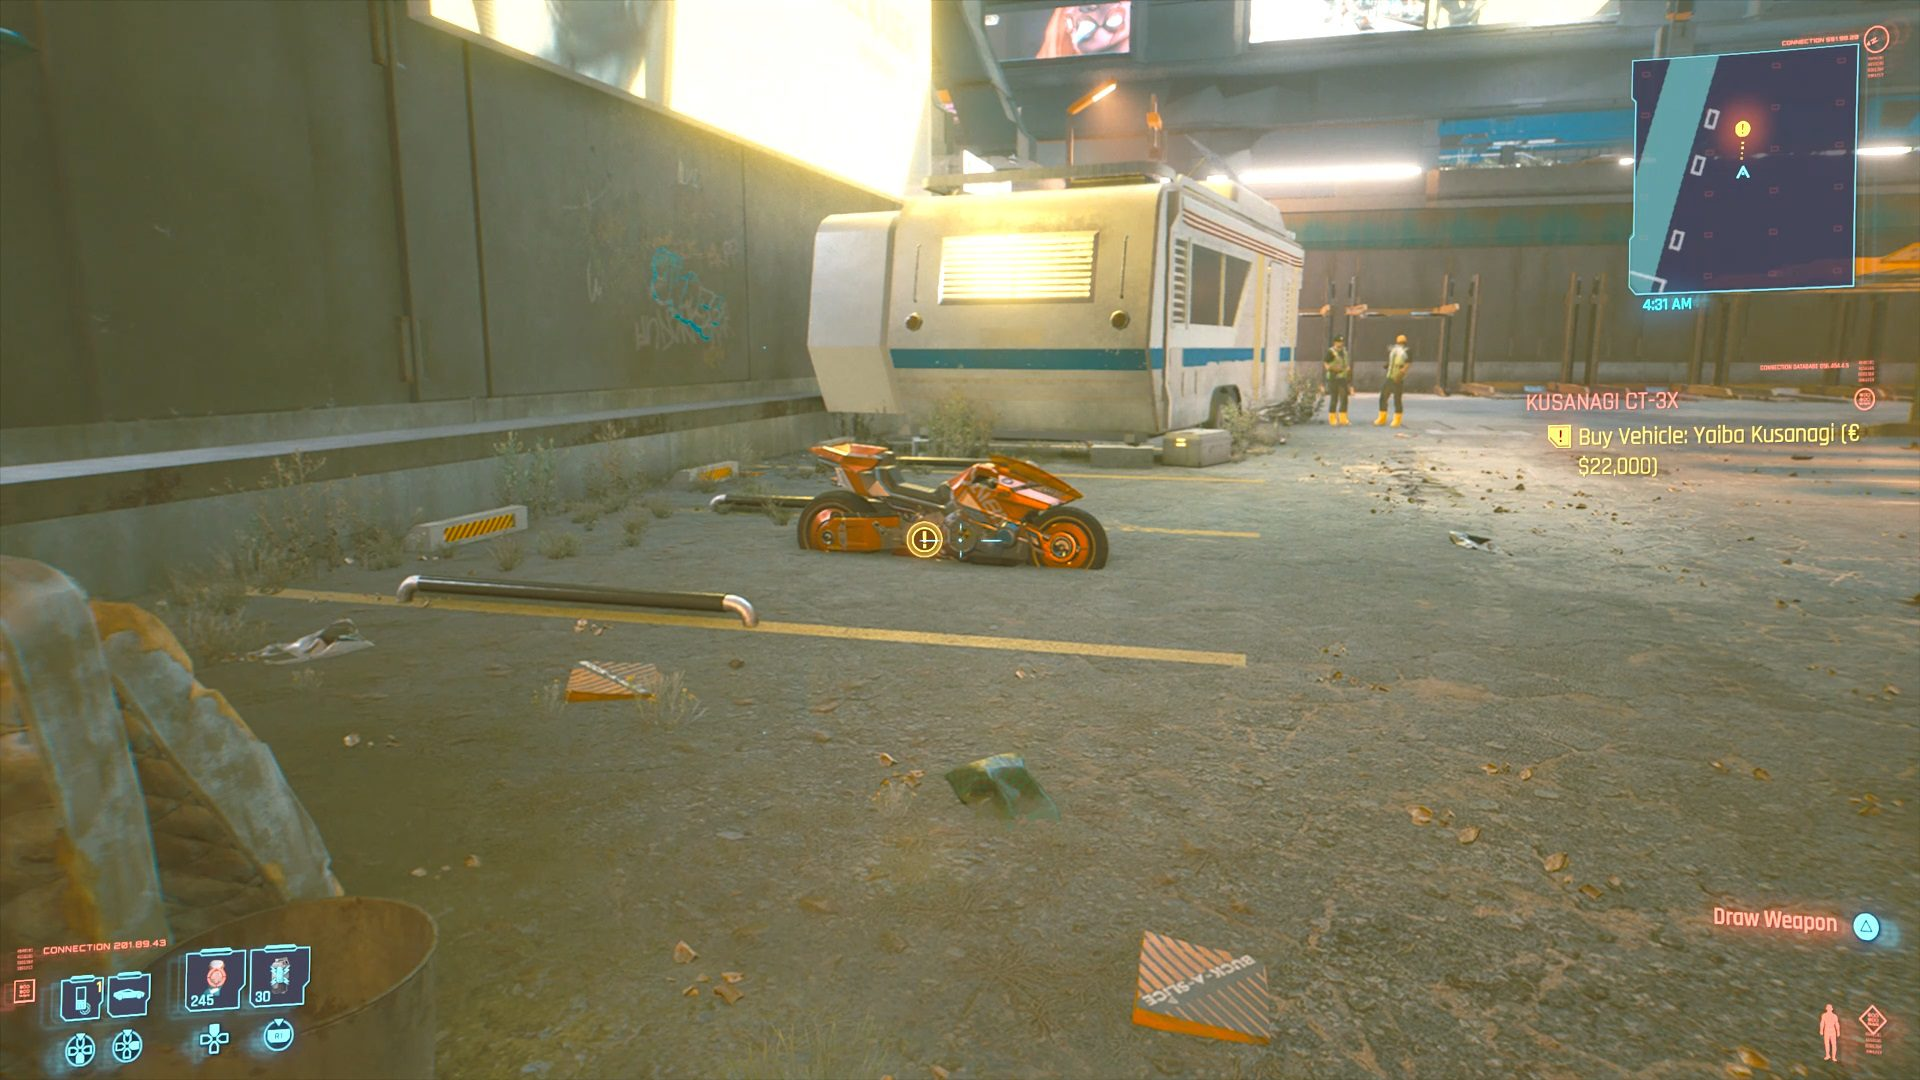 Cyberpunk 2077 Yaiba Kusanagi CT-3X Bike Location